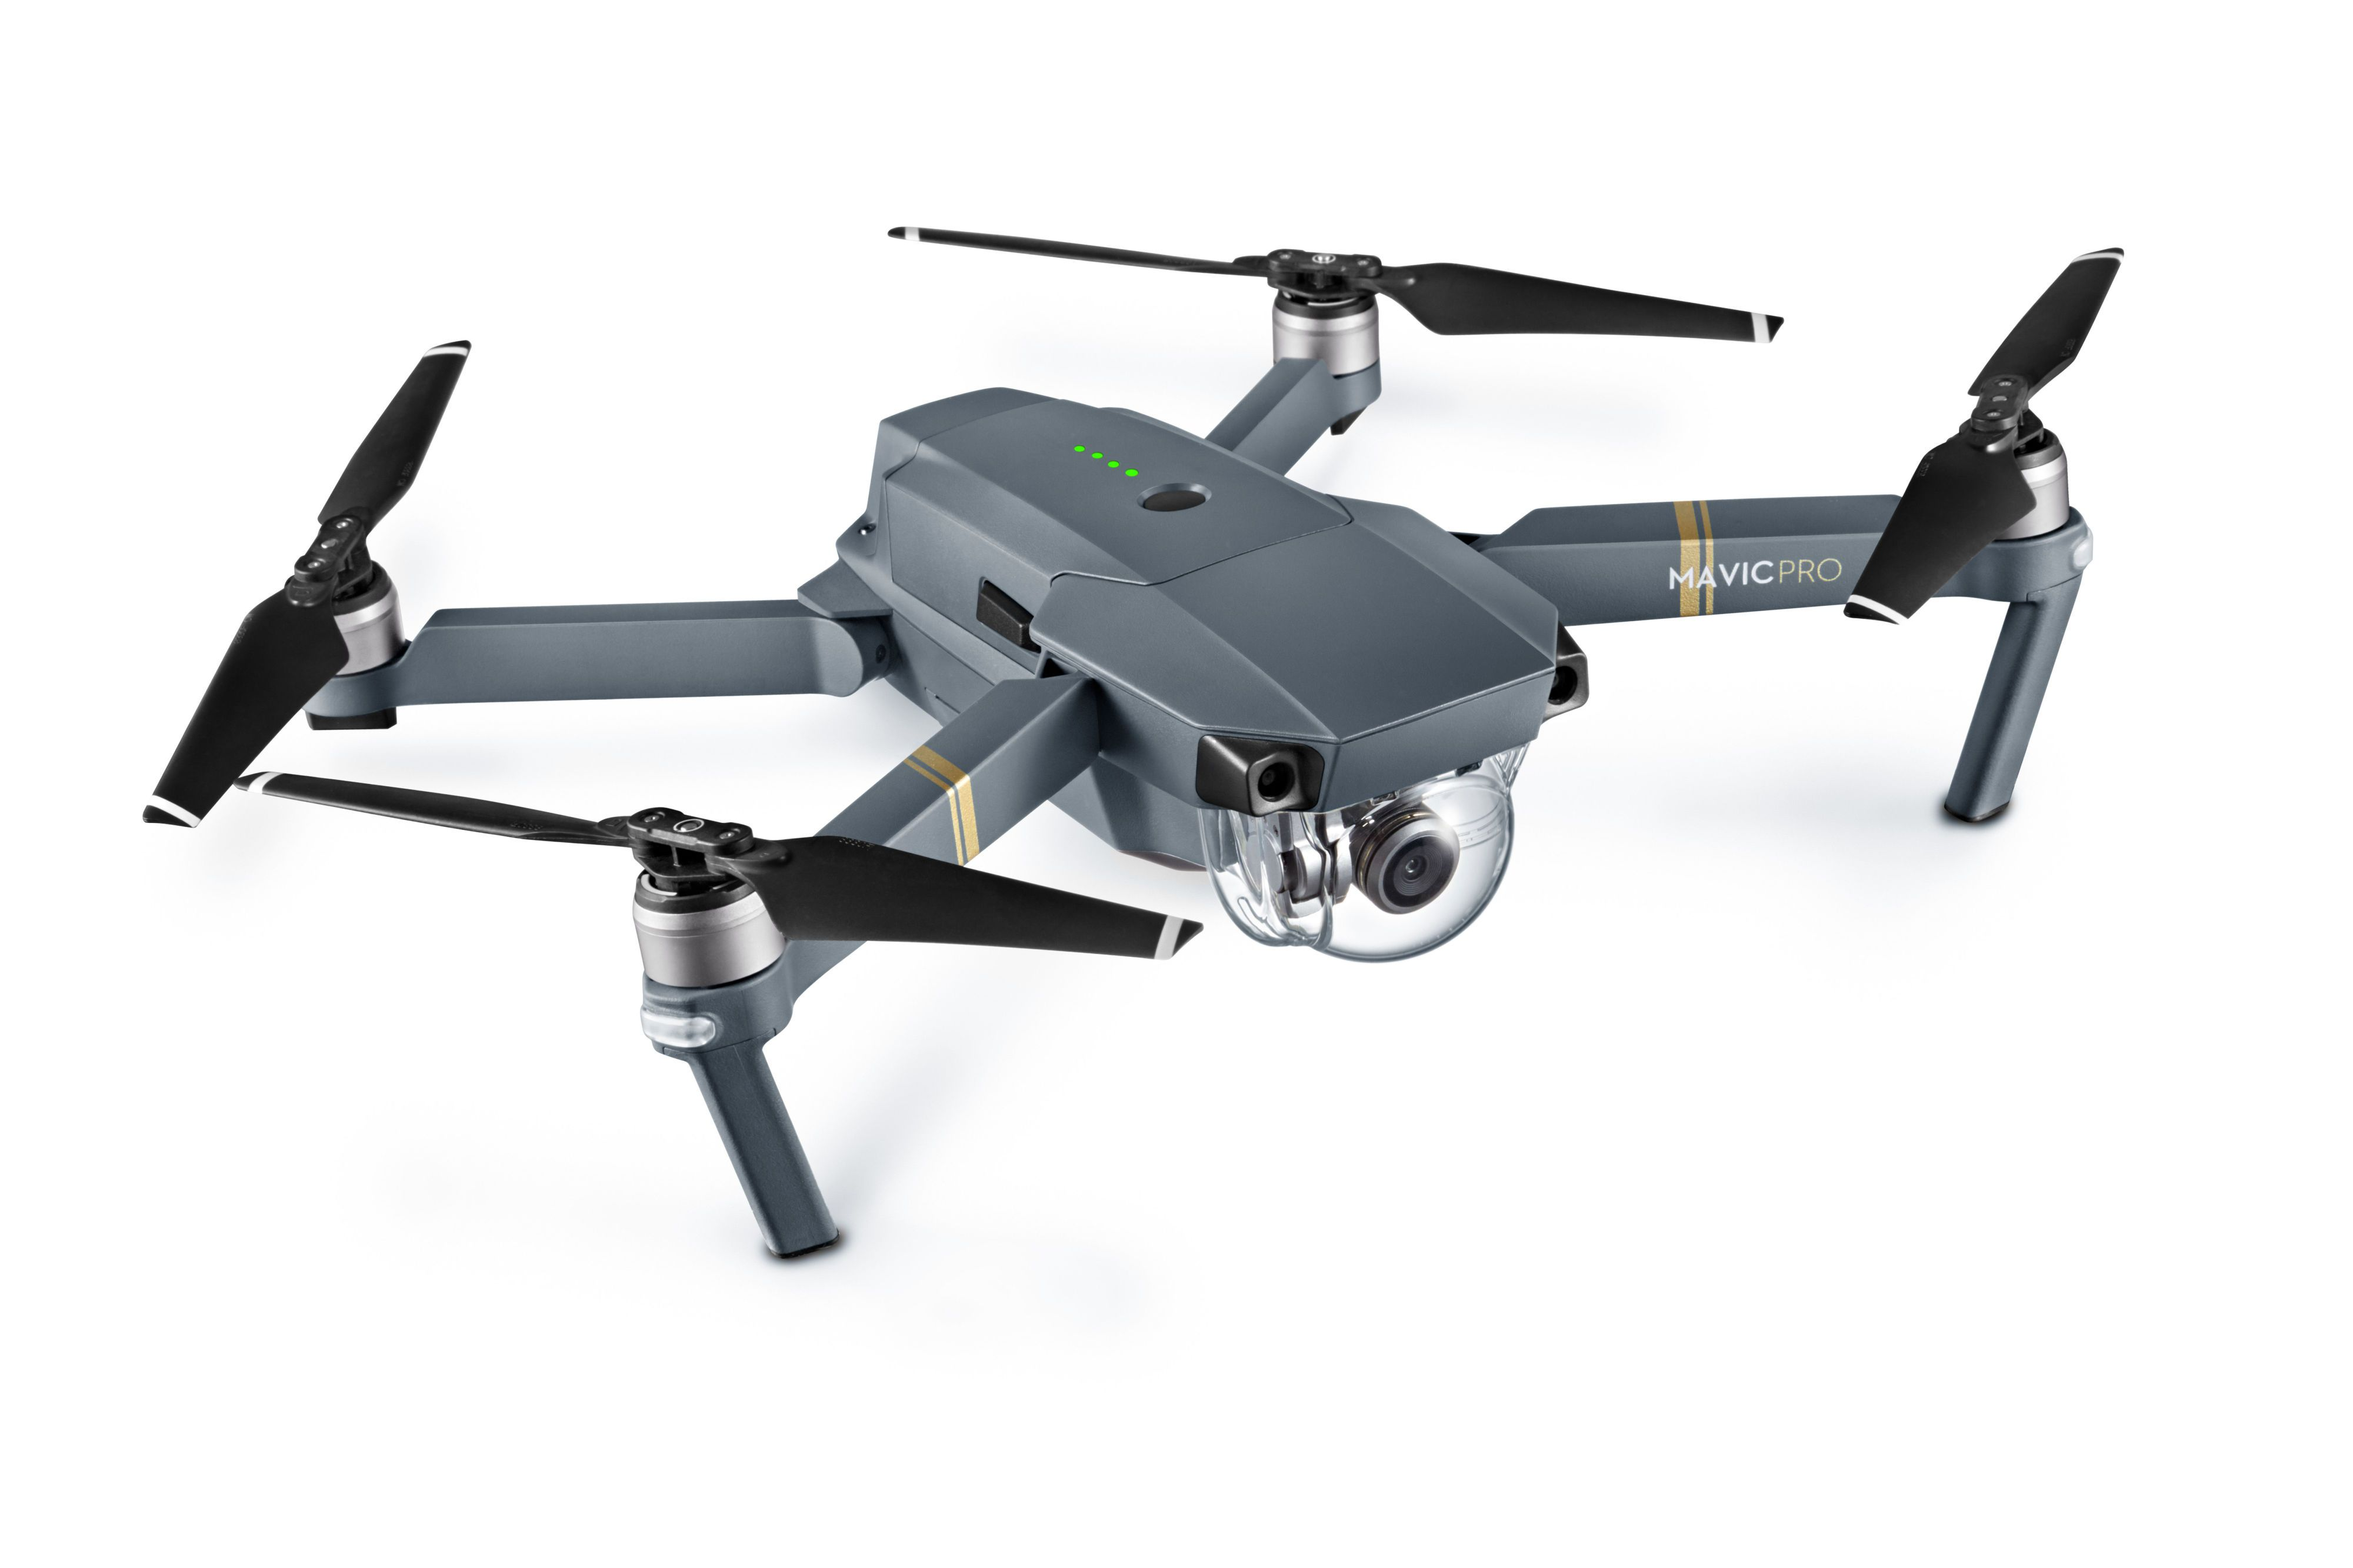 The World's Biggest Drone-Maker Just Revealed Its Tiniest Flyer Yet